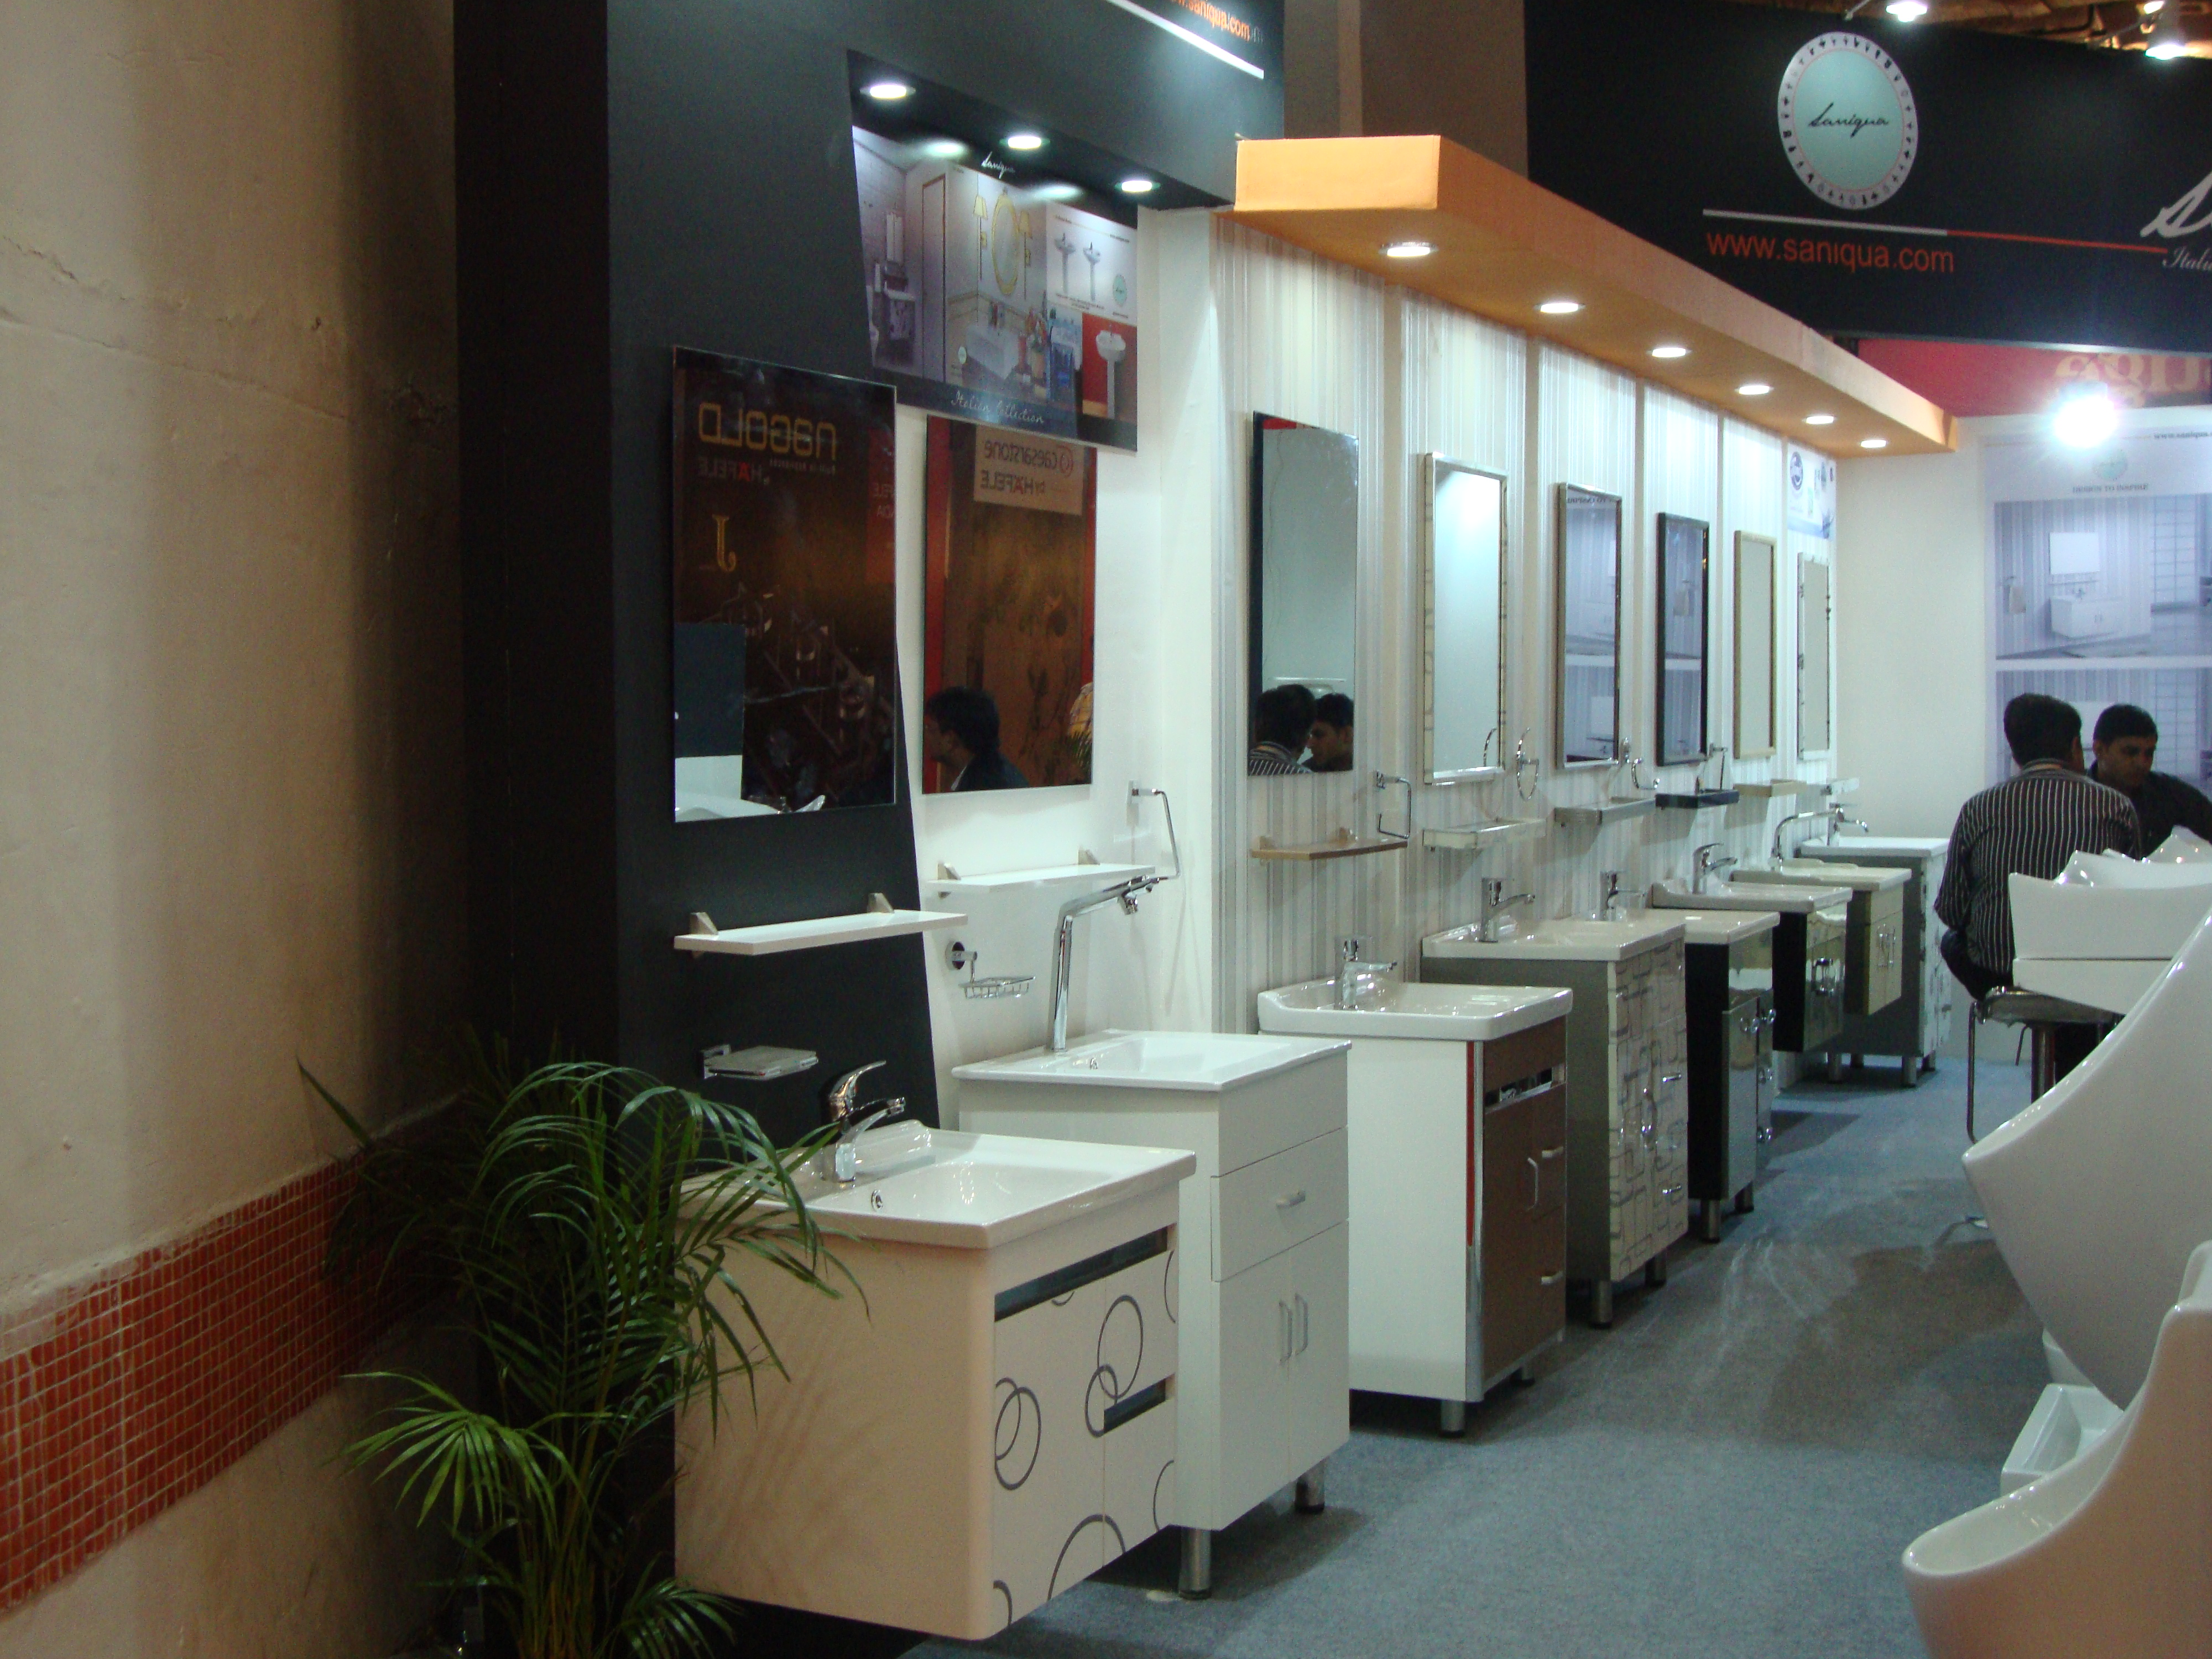 Saniqua at kitchen and bath 2015 saniqua - Bathroom fitting brands in india ...